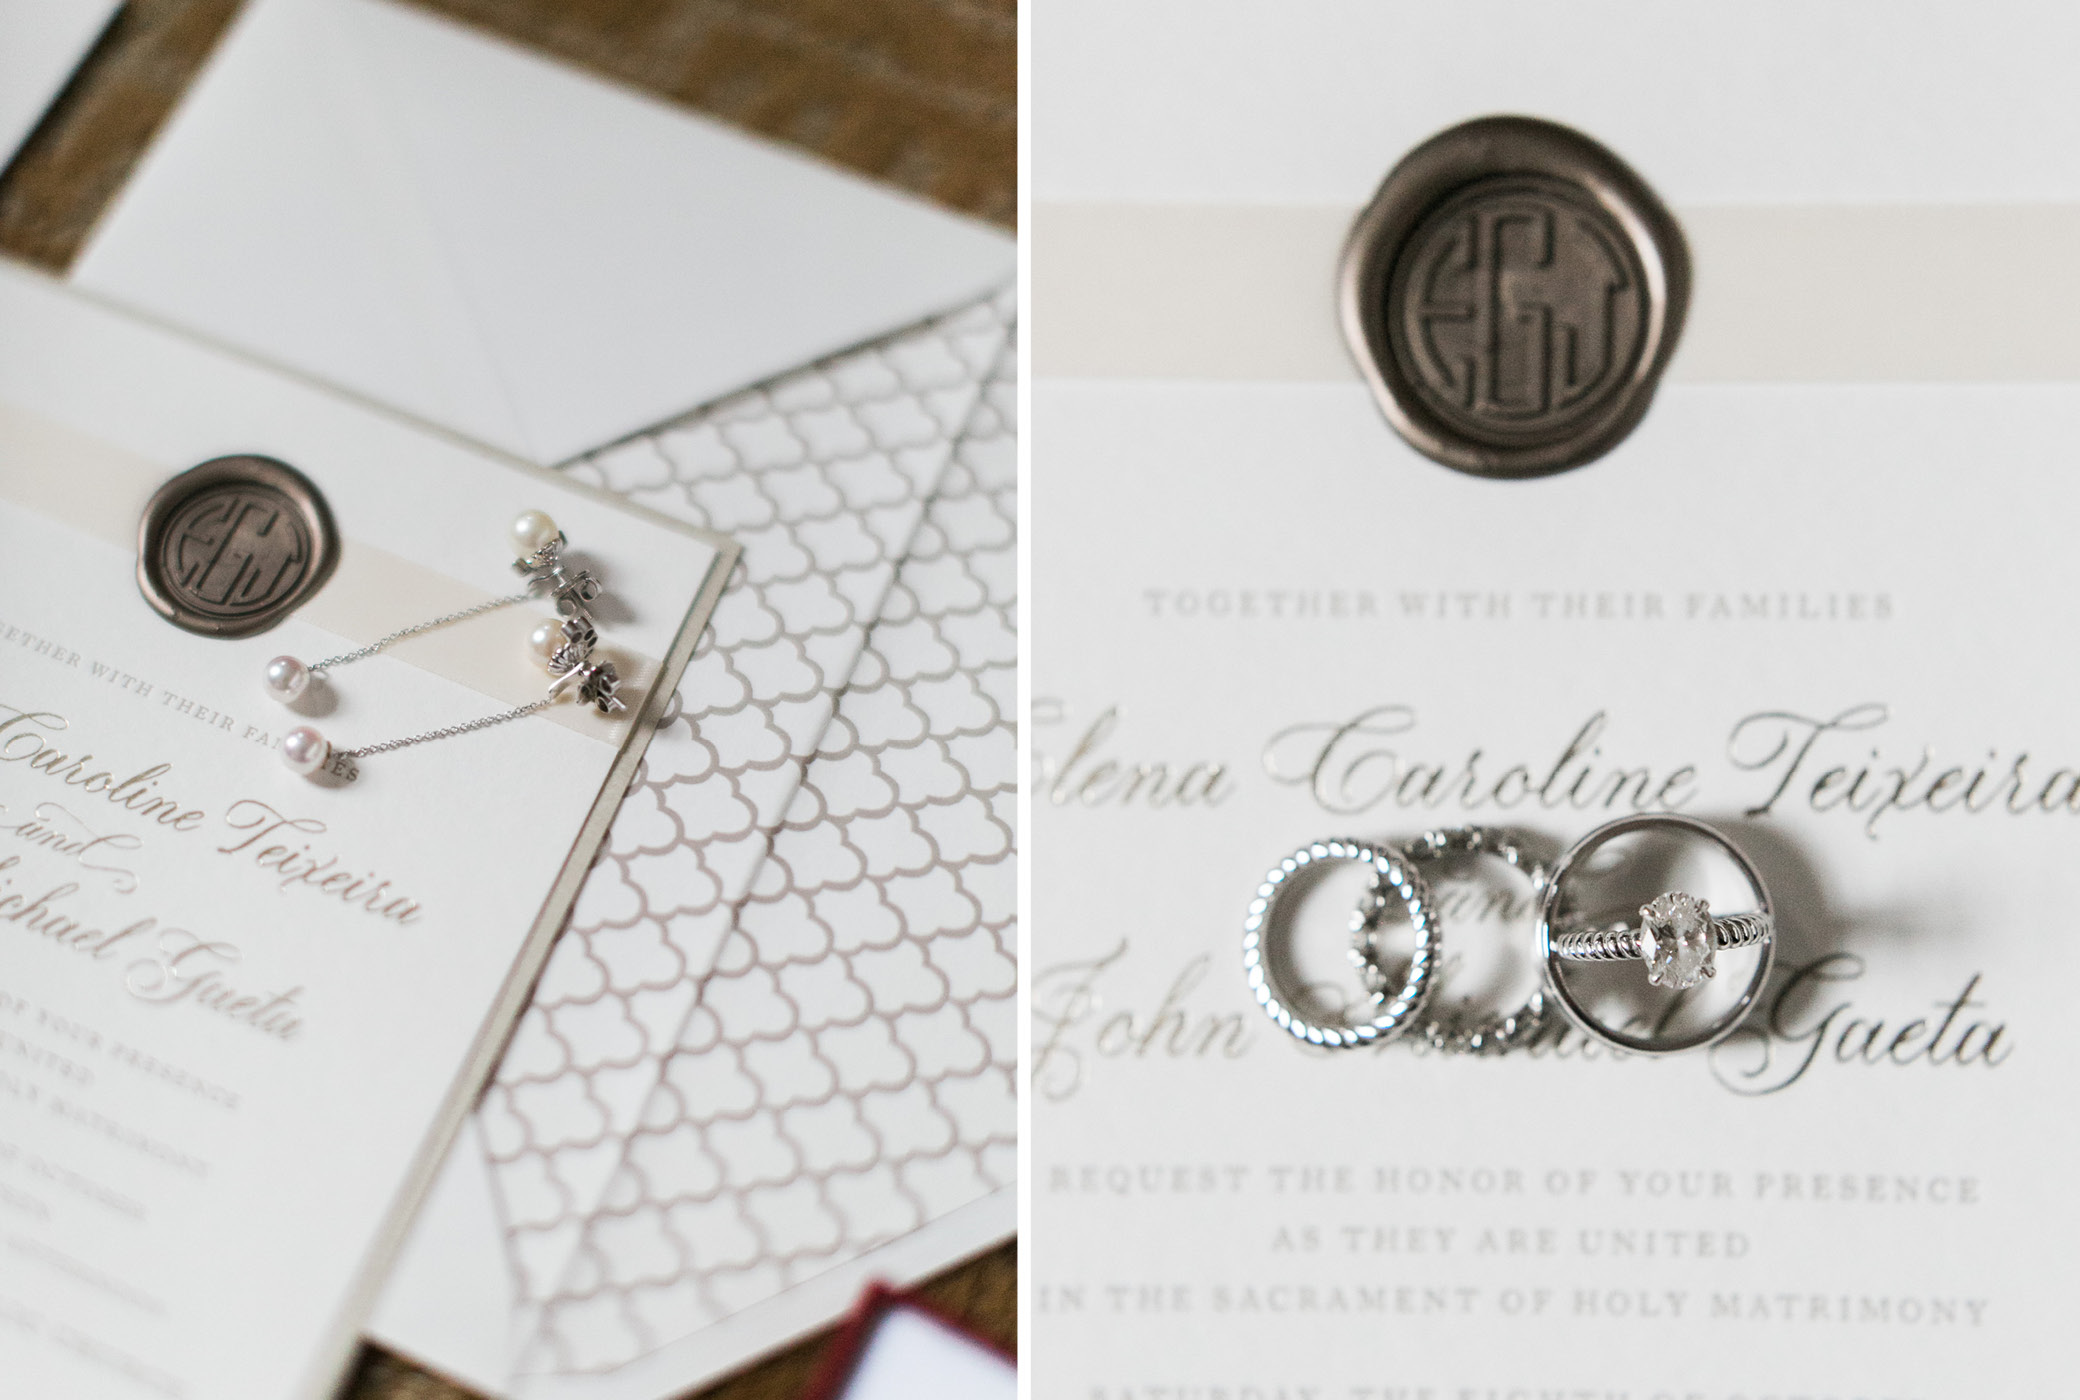 Elena + John, Wedding Invitation with Wax Seal